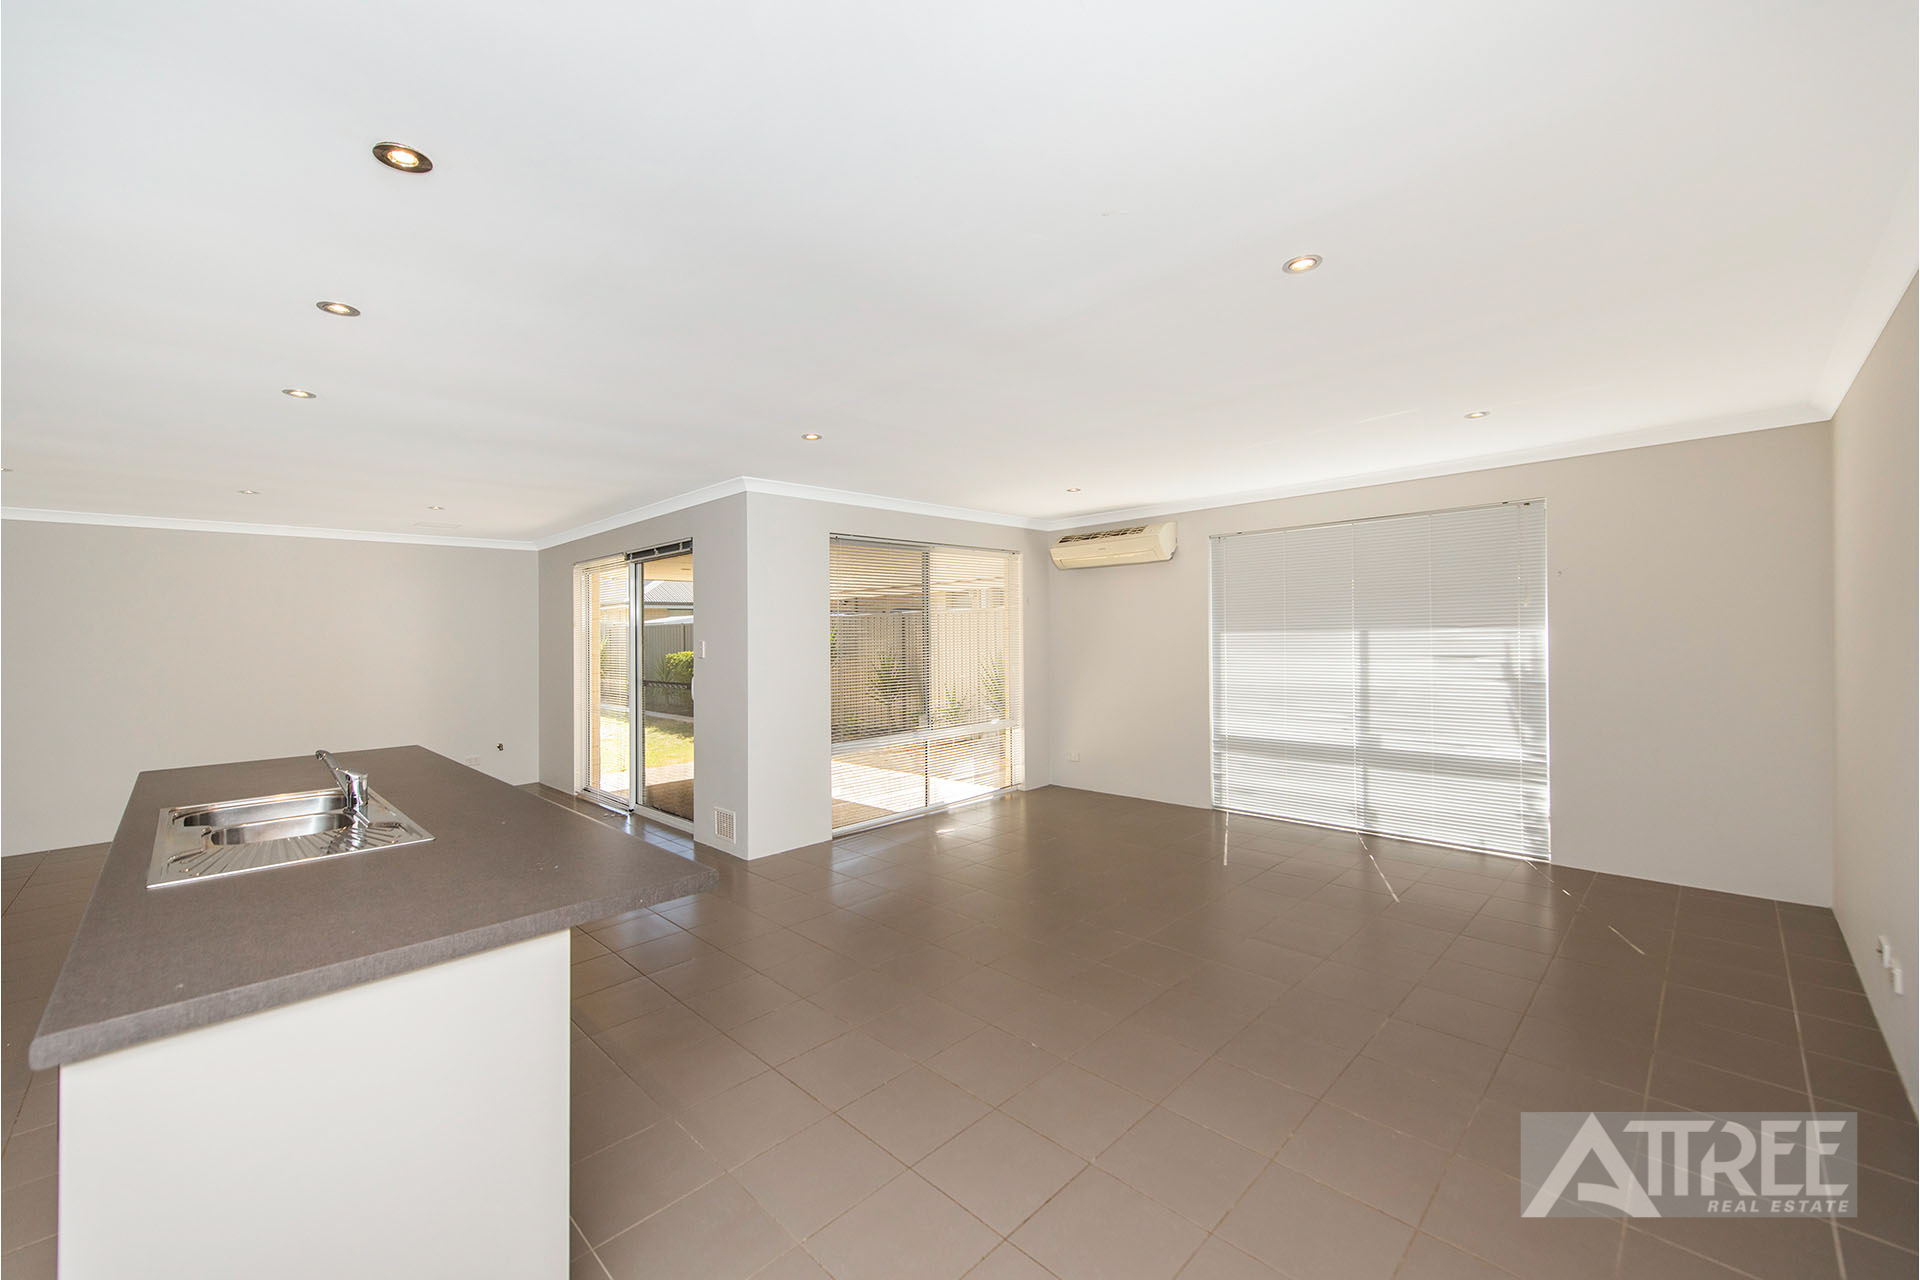 Property for sale in HARRISDALE, 17 Chatham Way : Attree Real Estate